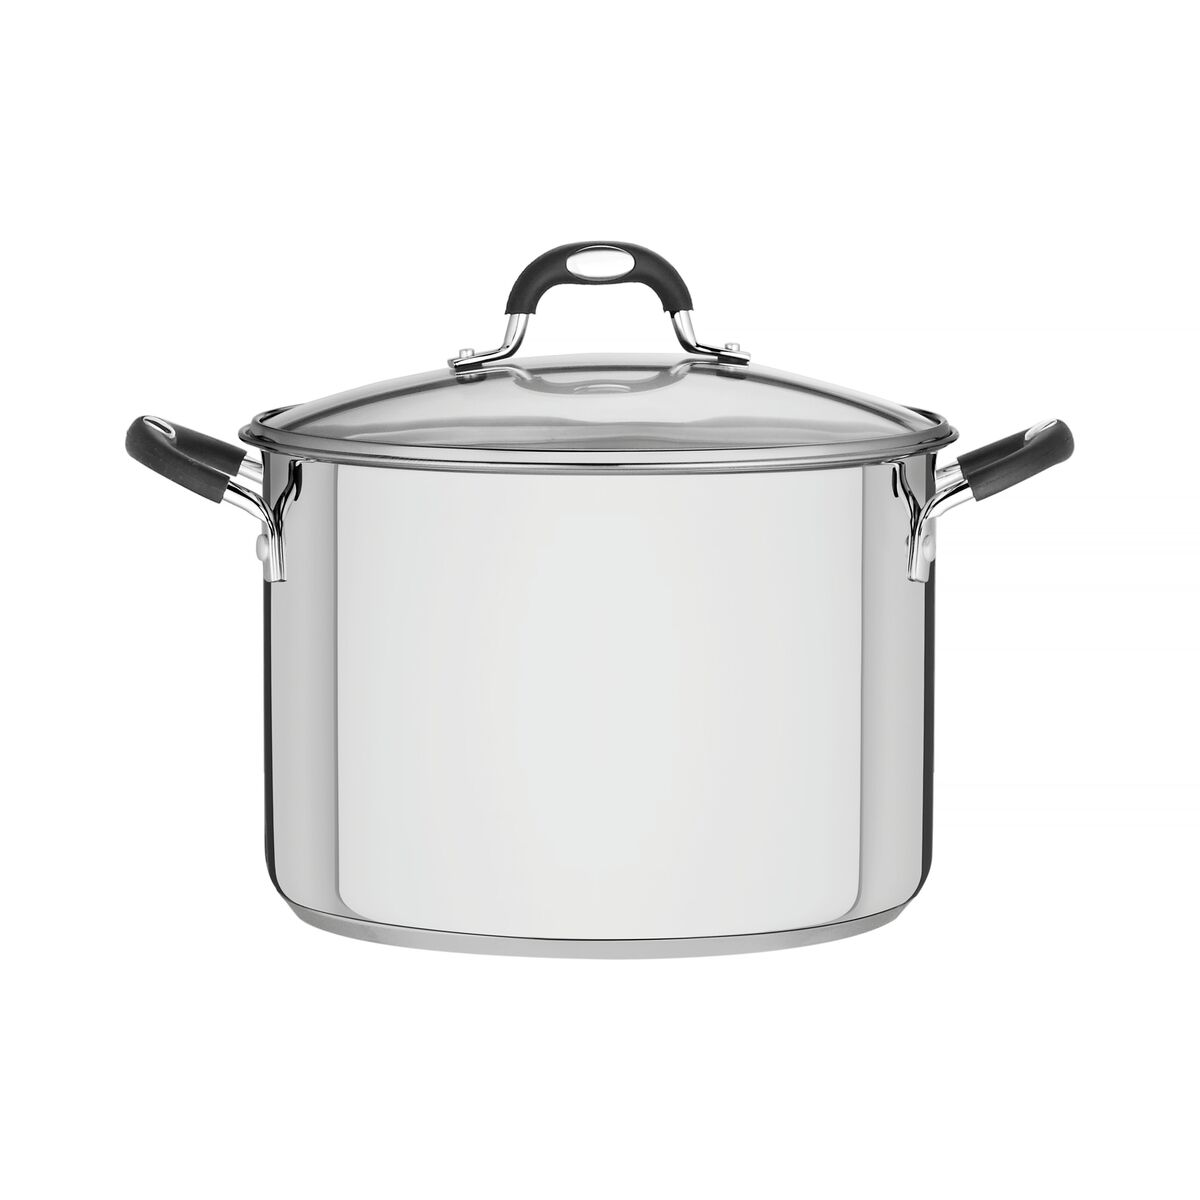 Tramontina Solar Silicone stainless steel stock pot with tri-ply base and glass lid, 28 cm and 11.9 L